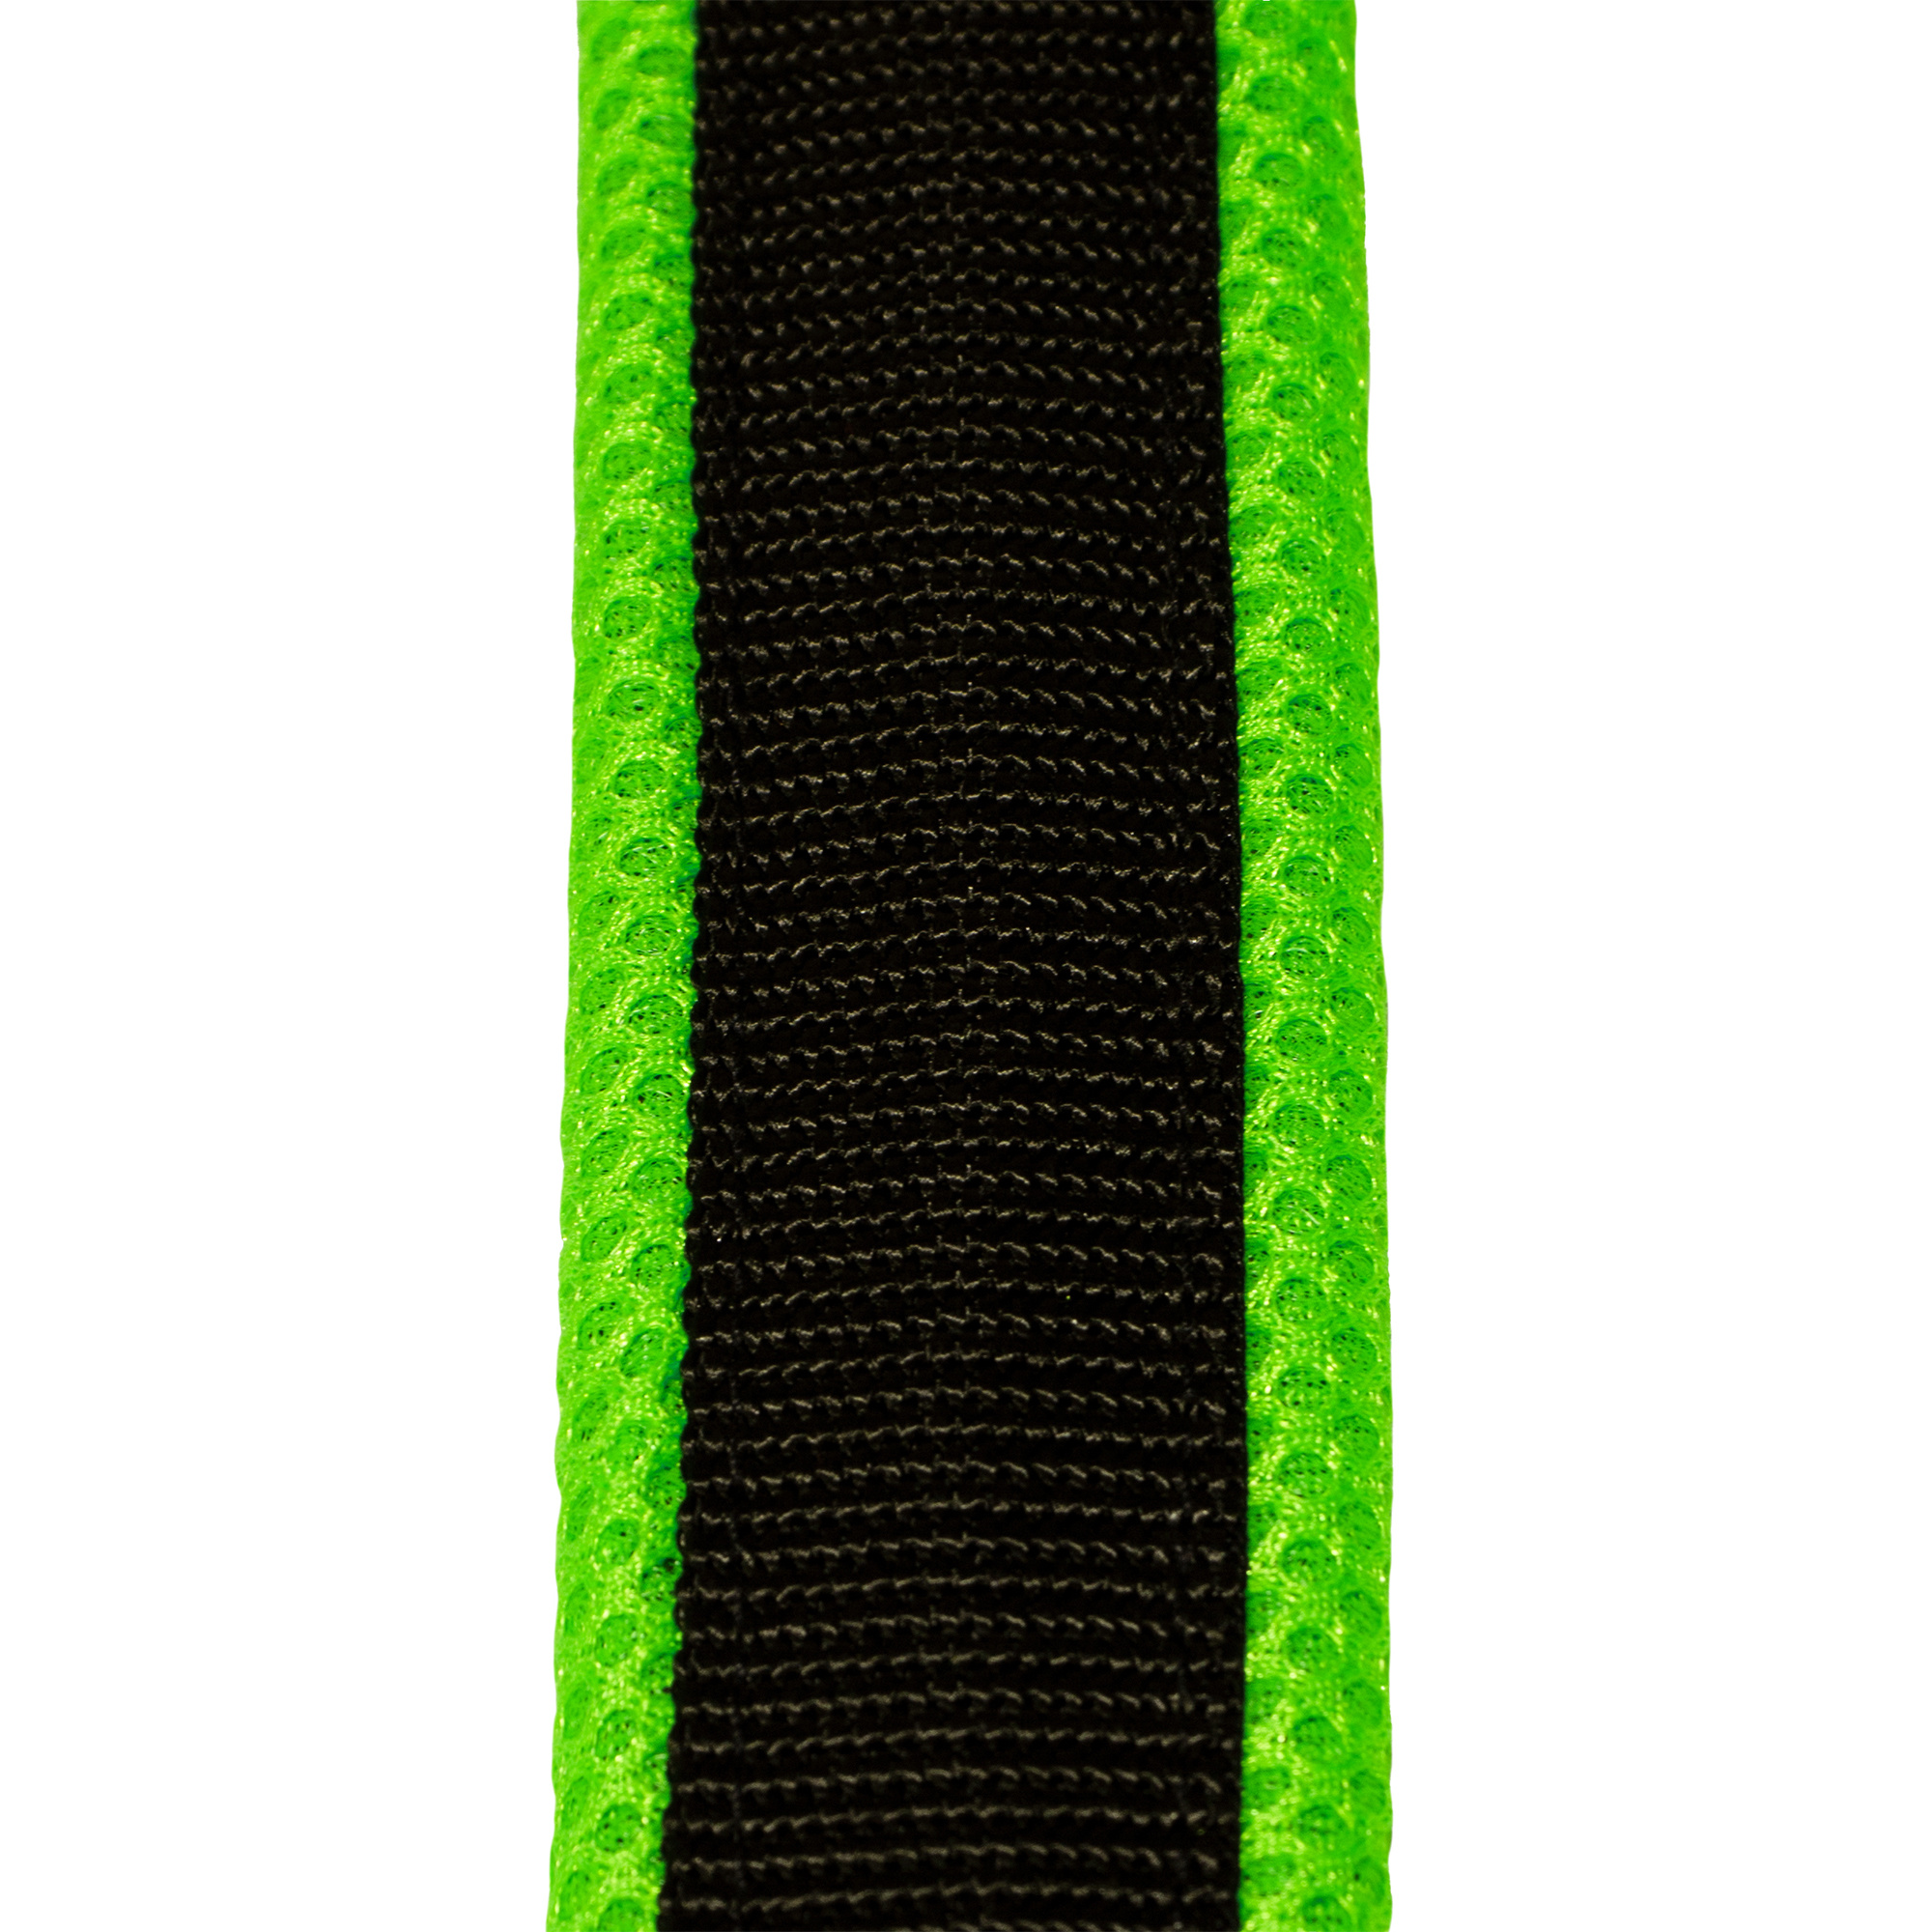 LasaLine LASALINE Weight Pulling Dog Harness, X-Back Style for Canicross, Bike, Sled, Scooter, Bike-, Ski-Joring, Jogging,... in black with neon green padding